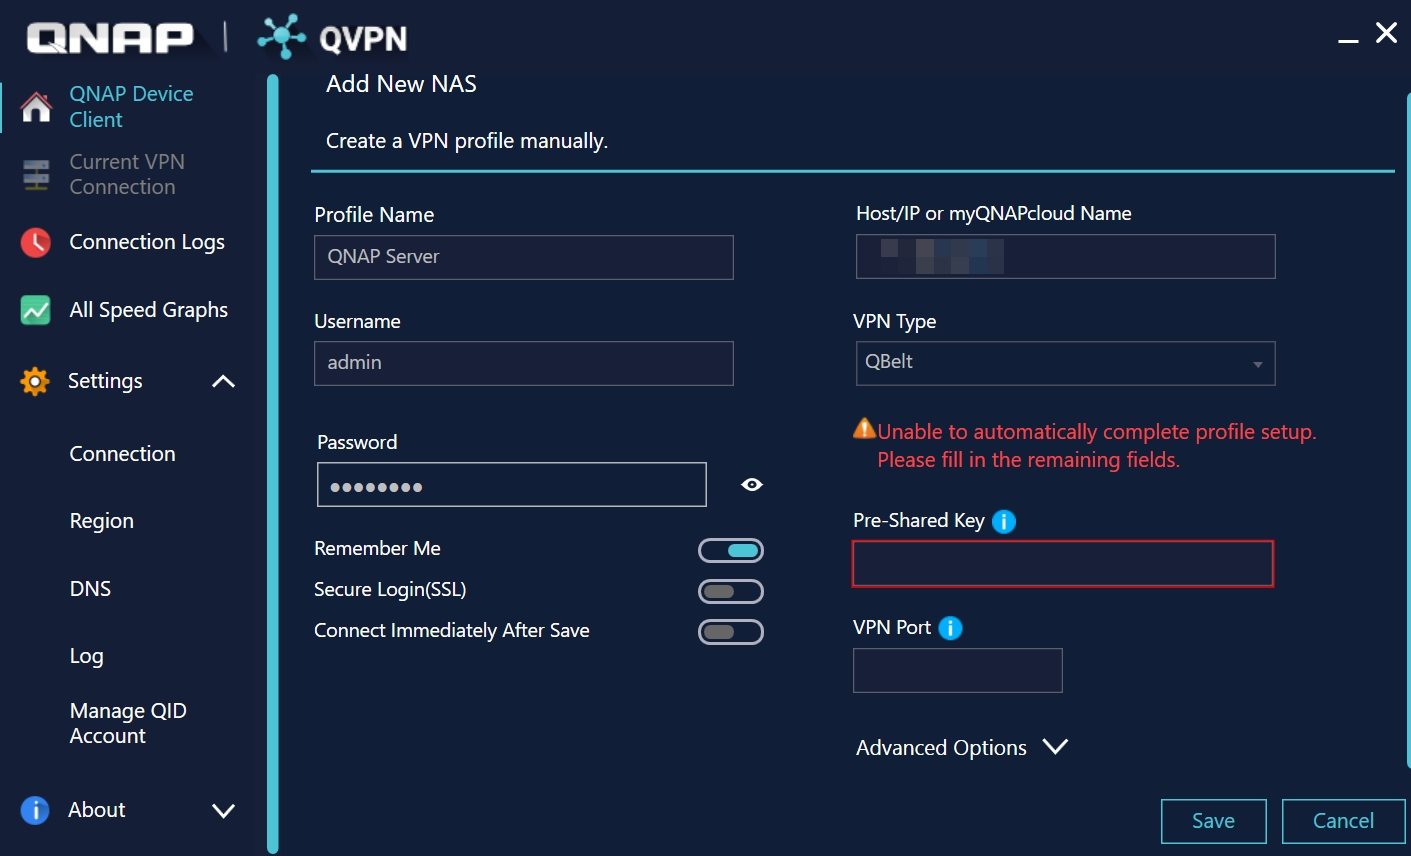 How To Set Up And Use Qvpn 2.0 ? | Qnap (Us)